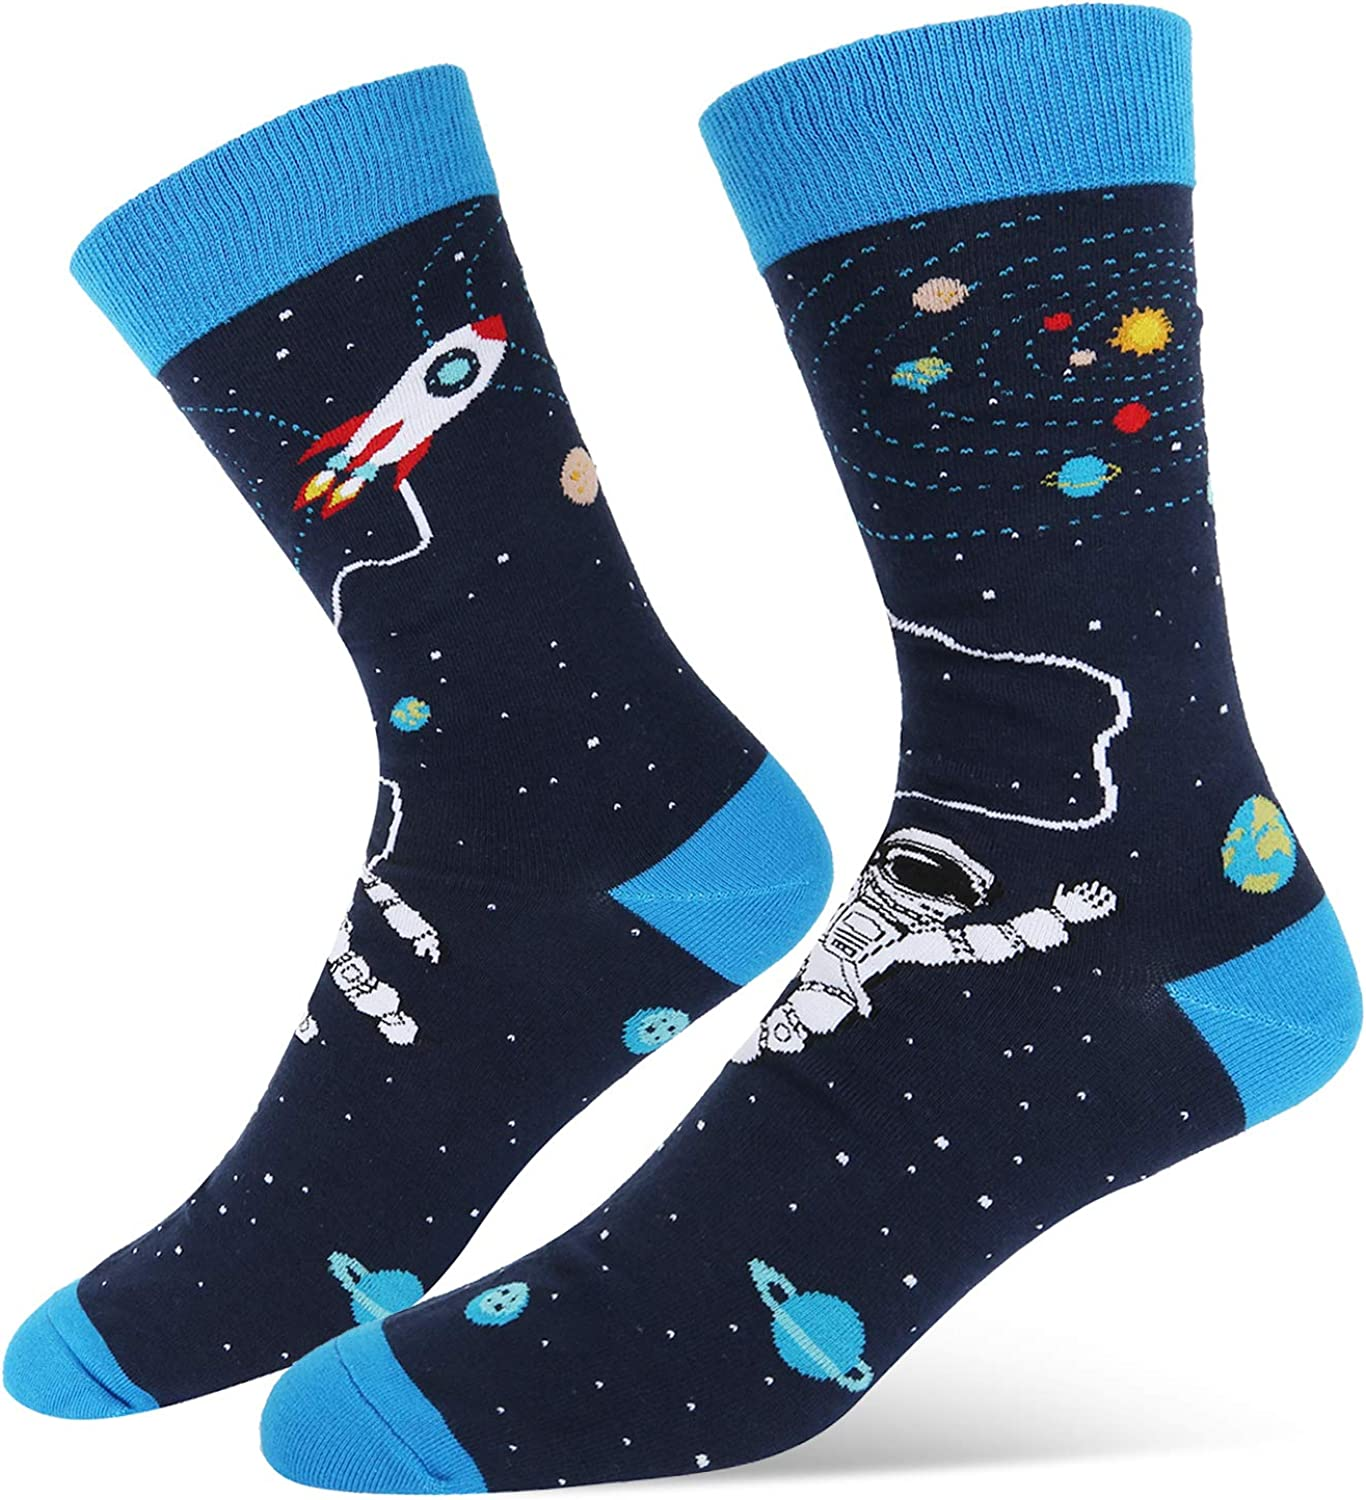 Delicious Cookies Unisex Funny Casual Crew Socks Athletic Socks For Boys Girls Kids Teenagers